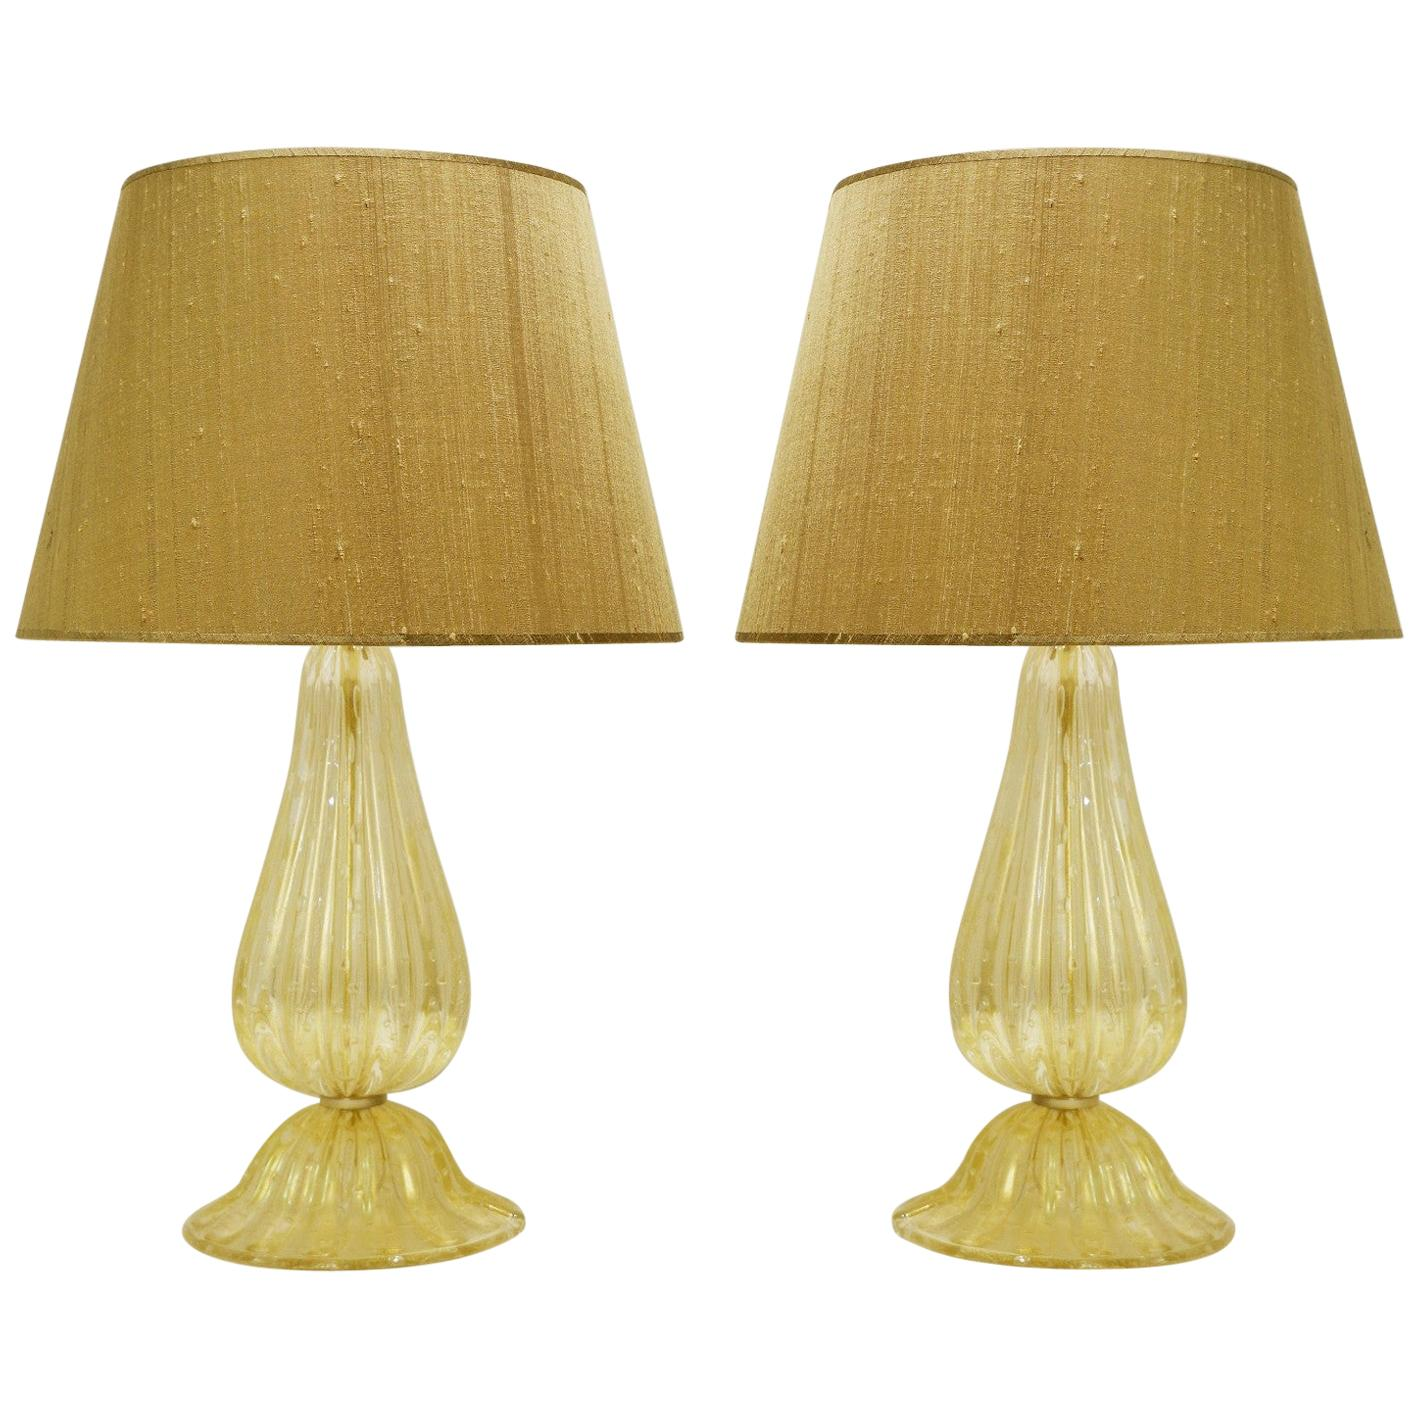 Pair of Gold Dust Murano Glass Table Lamps, Wild Silk Lampshade